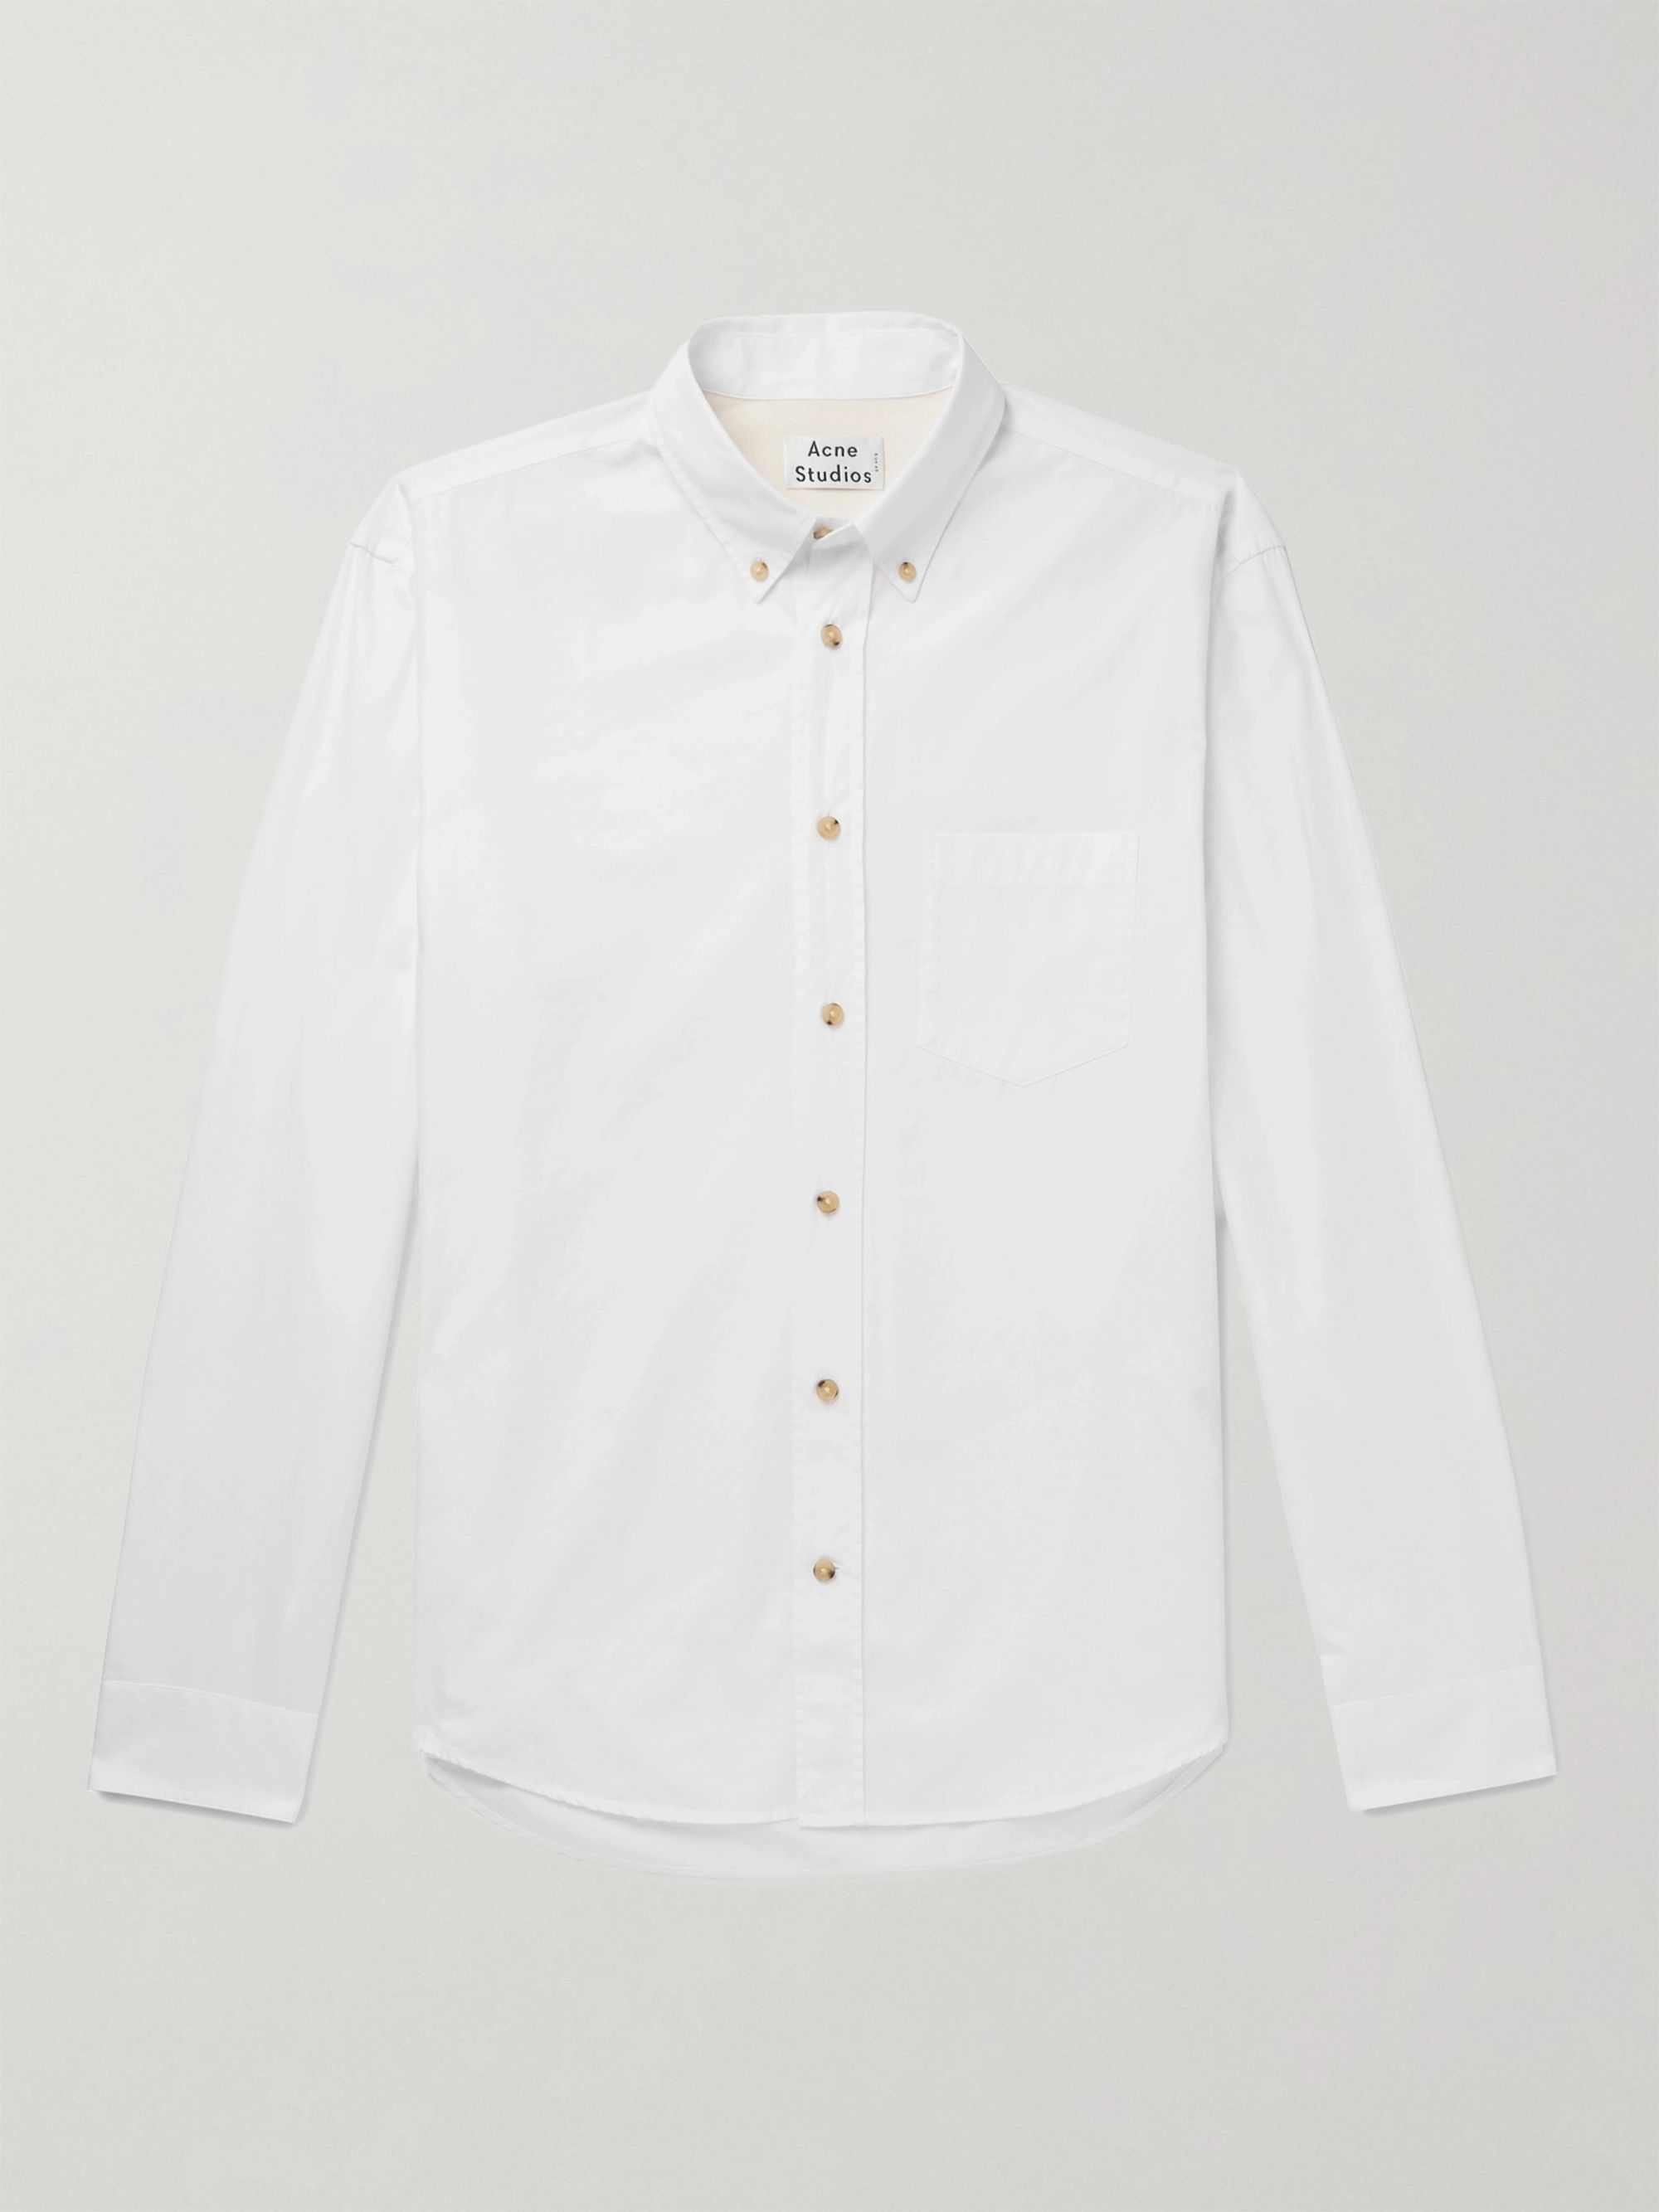 아크네 스튜디오 Acne Studios Button-Down Collar Cotton-Poplin Shirt,White